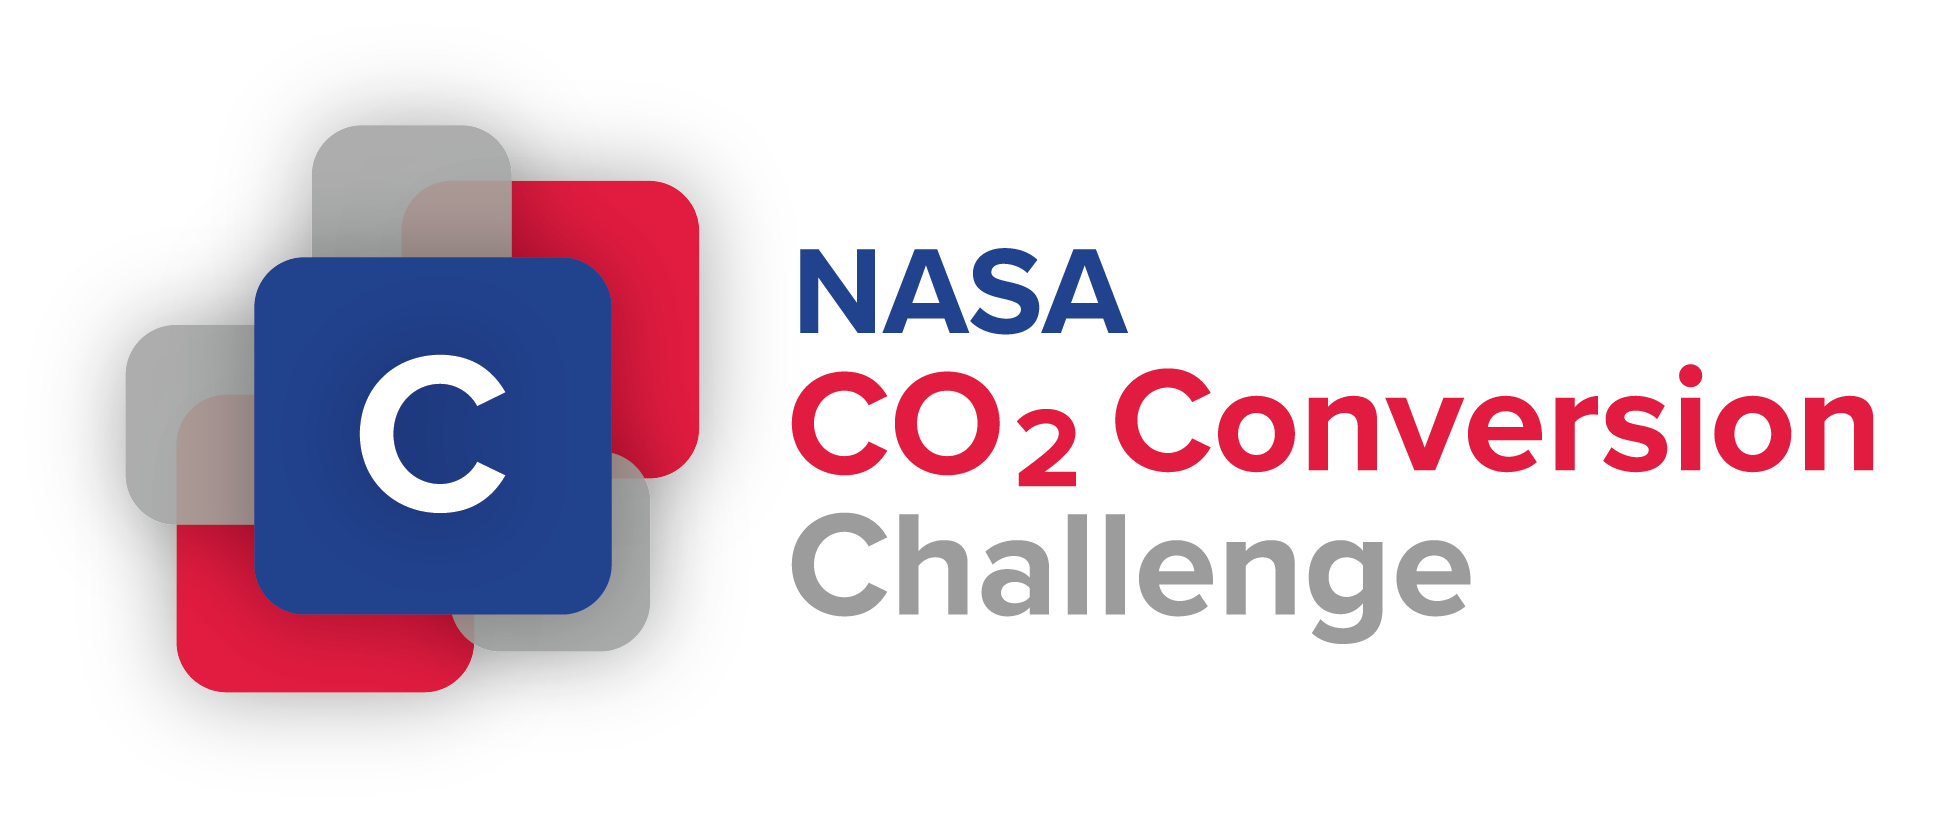 CO2 Conversion Challenge Phase 2